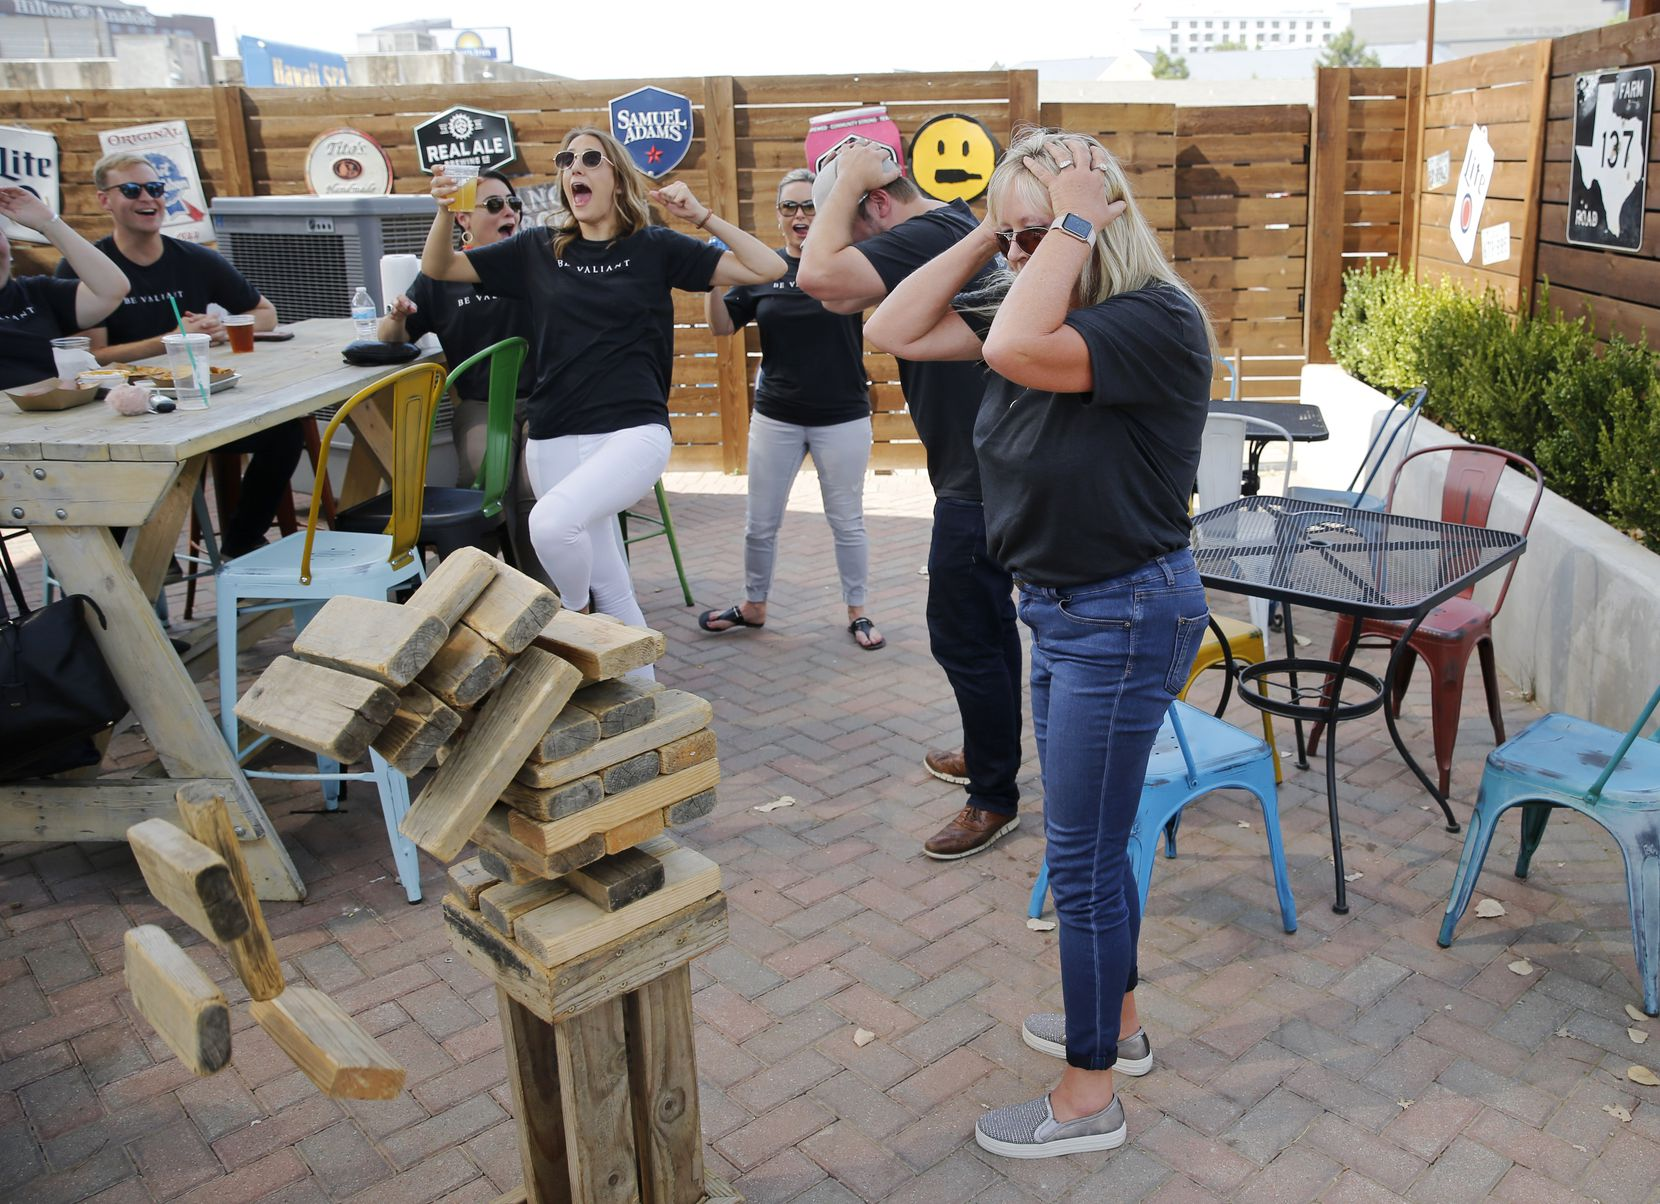 Kim Espinoza (right) and Craig Lashley (second from right) were dejected as Tanya Morales (center) and Emily Schroeder (in white pants) celebrated their victory in a game of Jenga during an employee appreciation event for Valiant Residential employees.